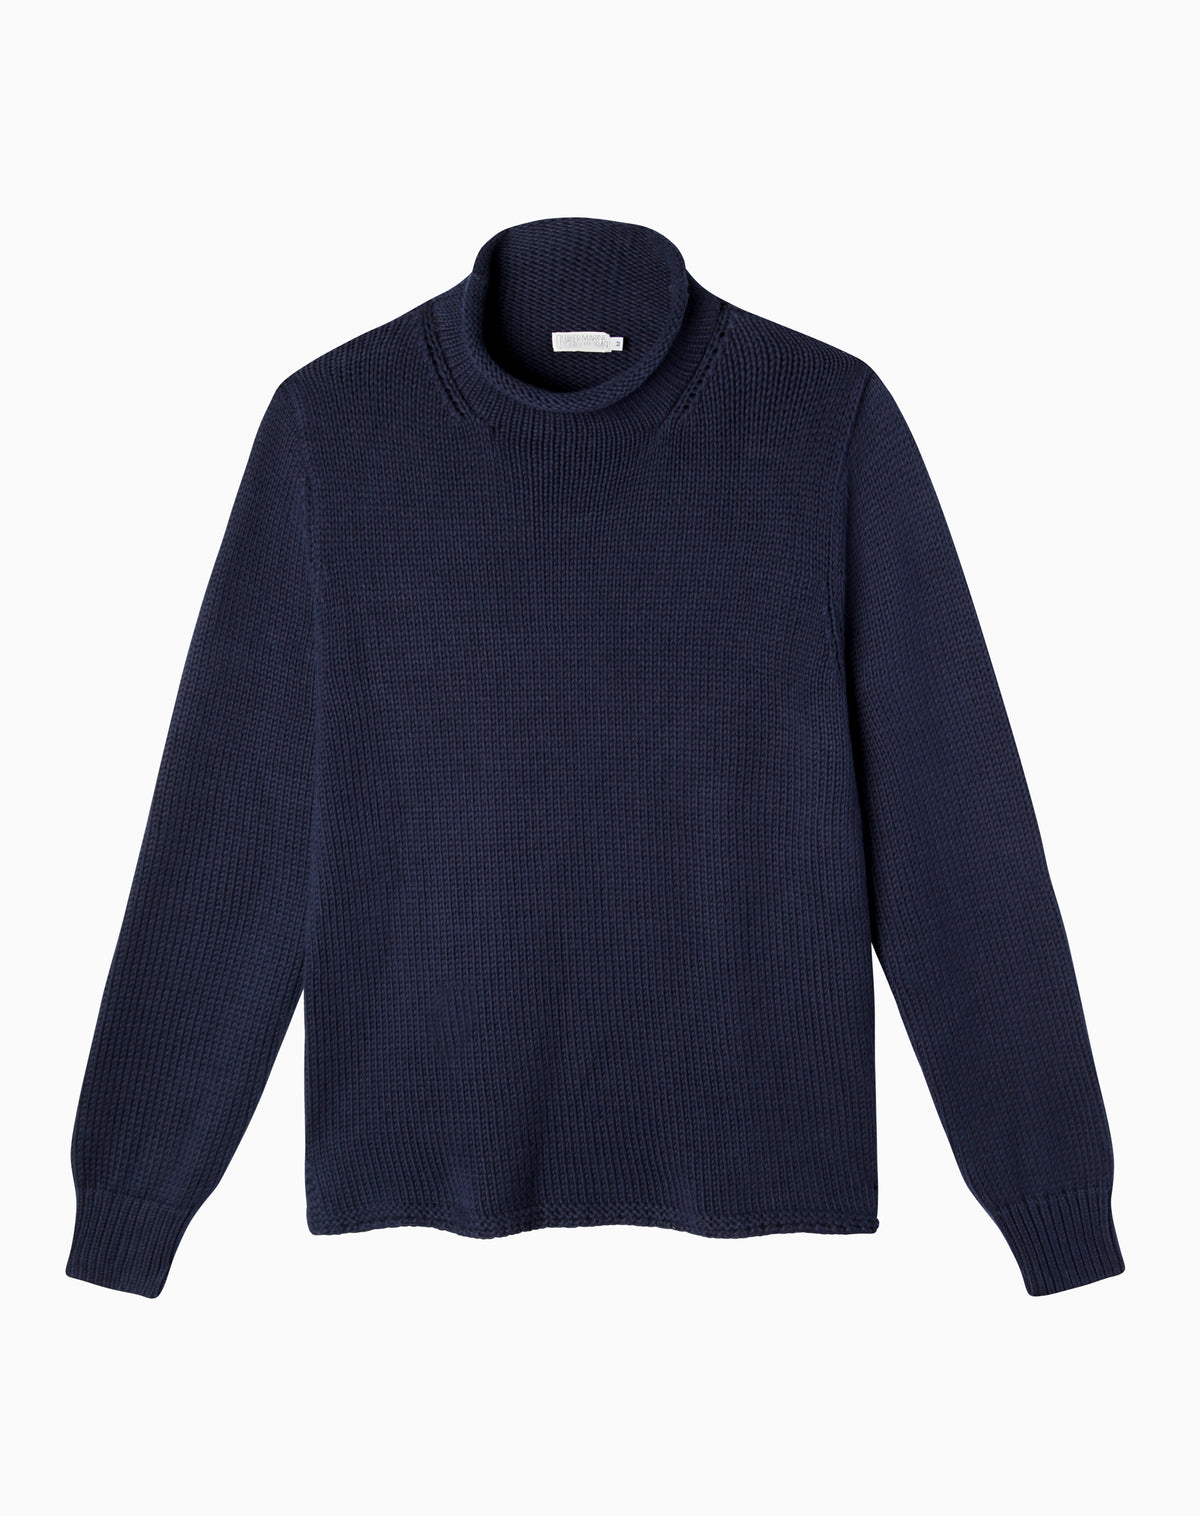 Fisherman's Sweater in Navy